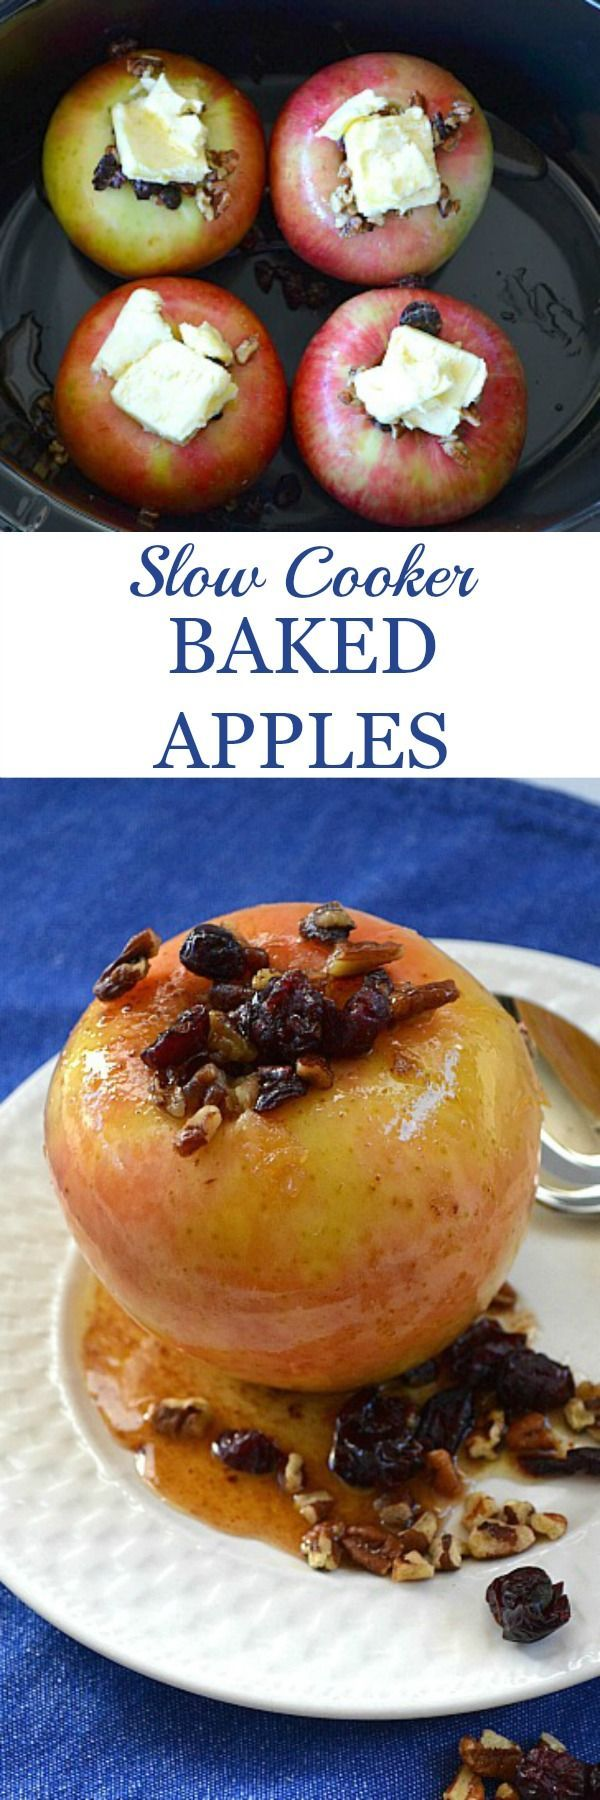 Slow cooker baked apples recipe makes the ultimate in comfort food. Made from 100% whole food ingredients, this is a healthy, easily made dessert for families.